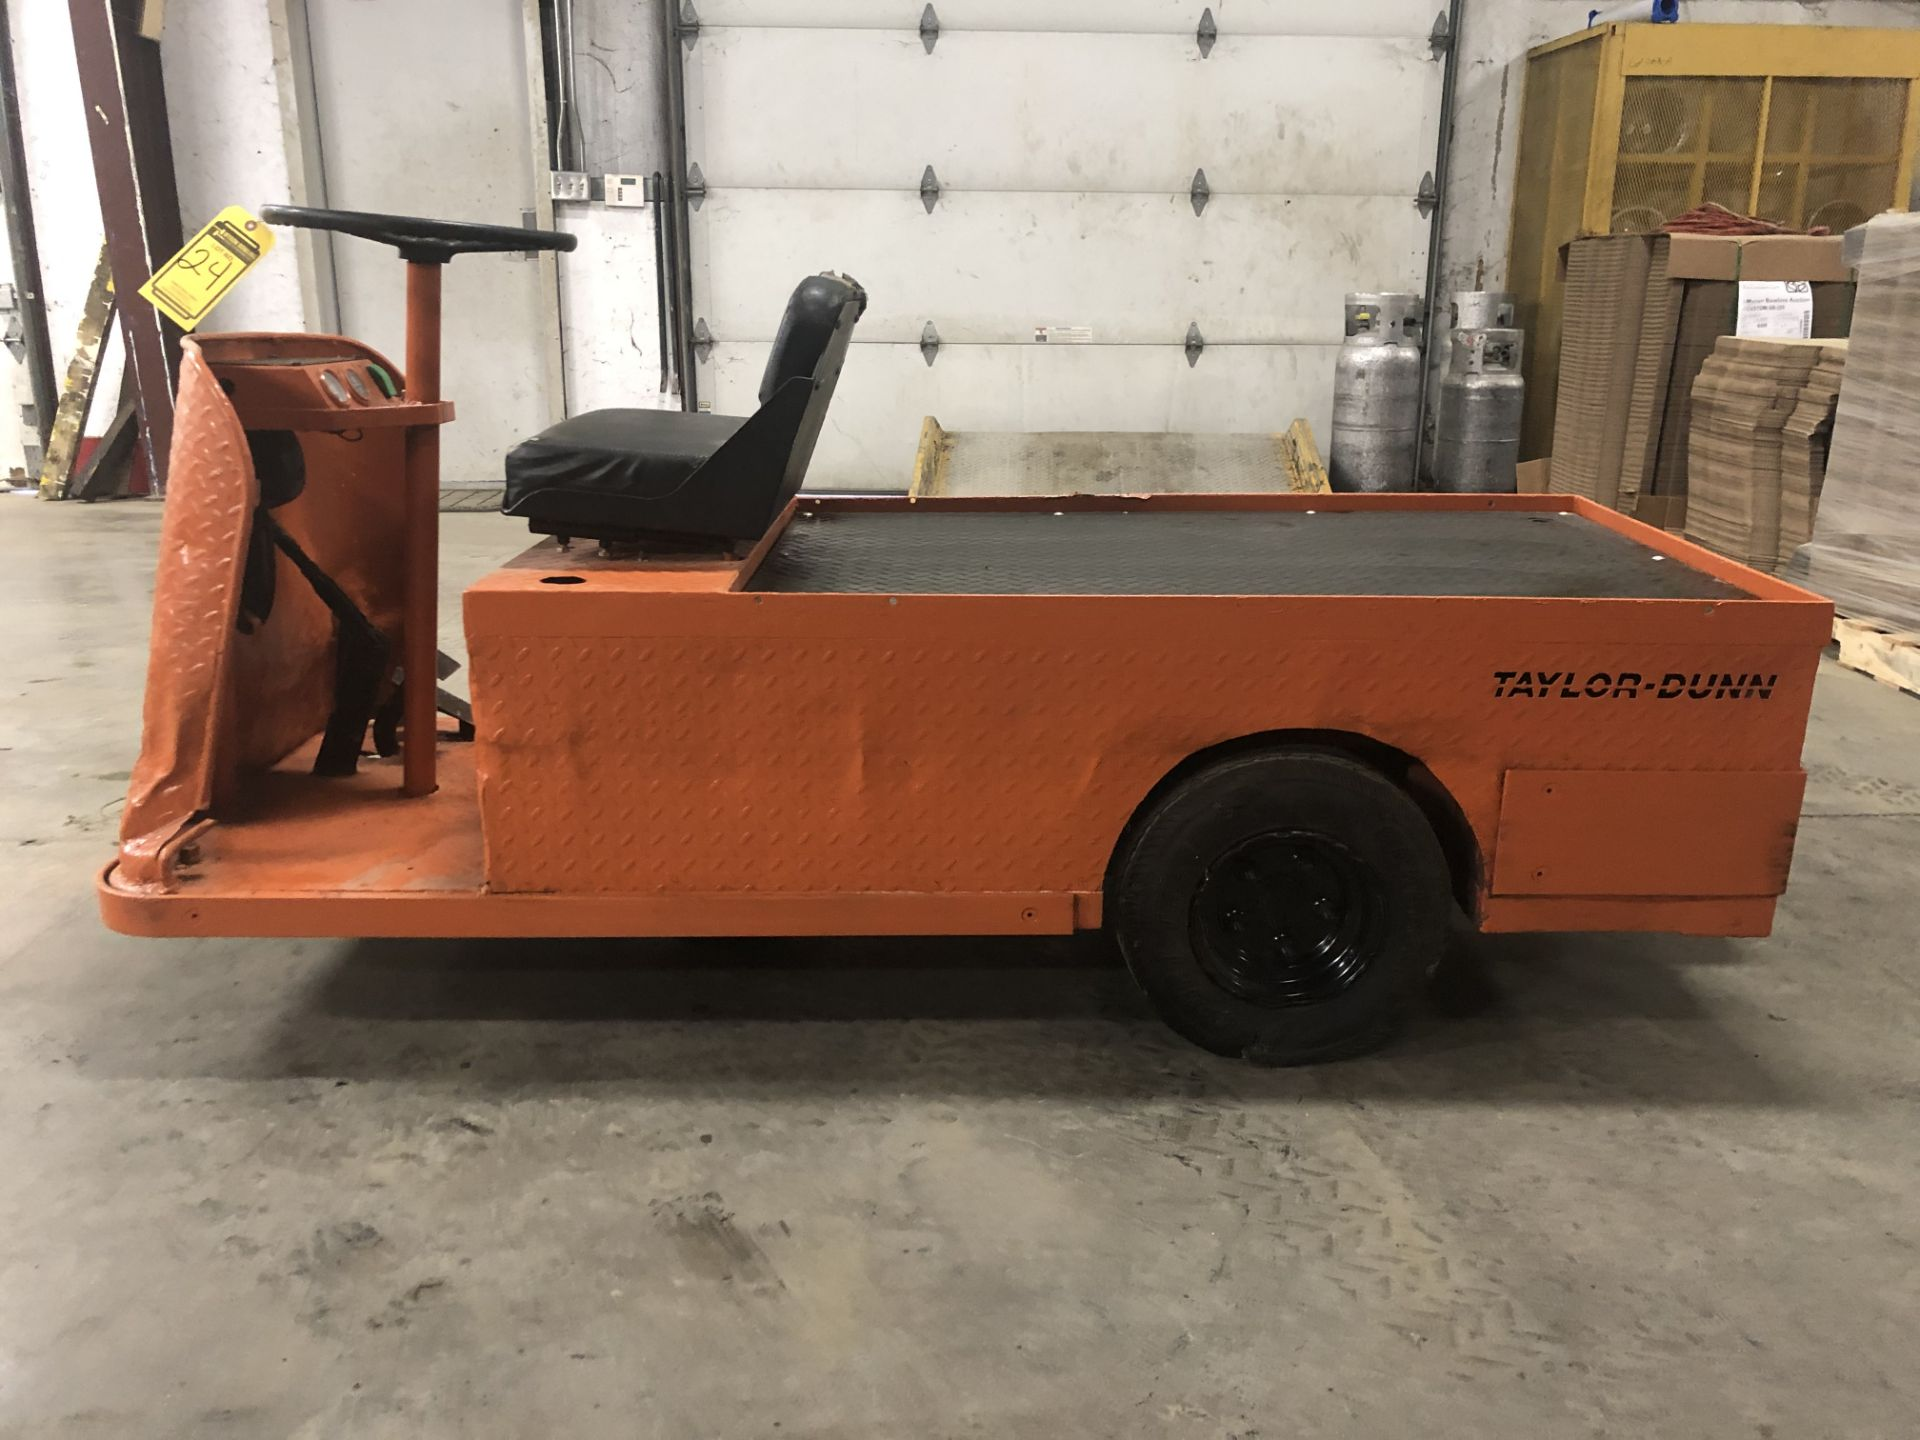 Lot 24 - 2007 TAYLOR-DUNN 3-WHEEL ELECTRIC PERSONNEL CART, 450-LB. CAPACITY, ON-BOARD CHARGER